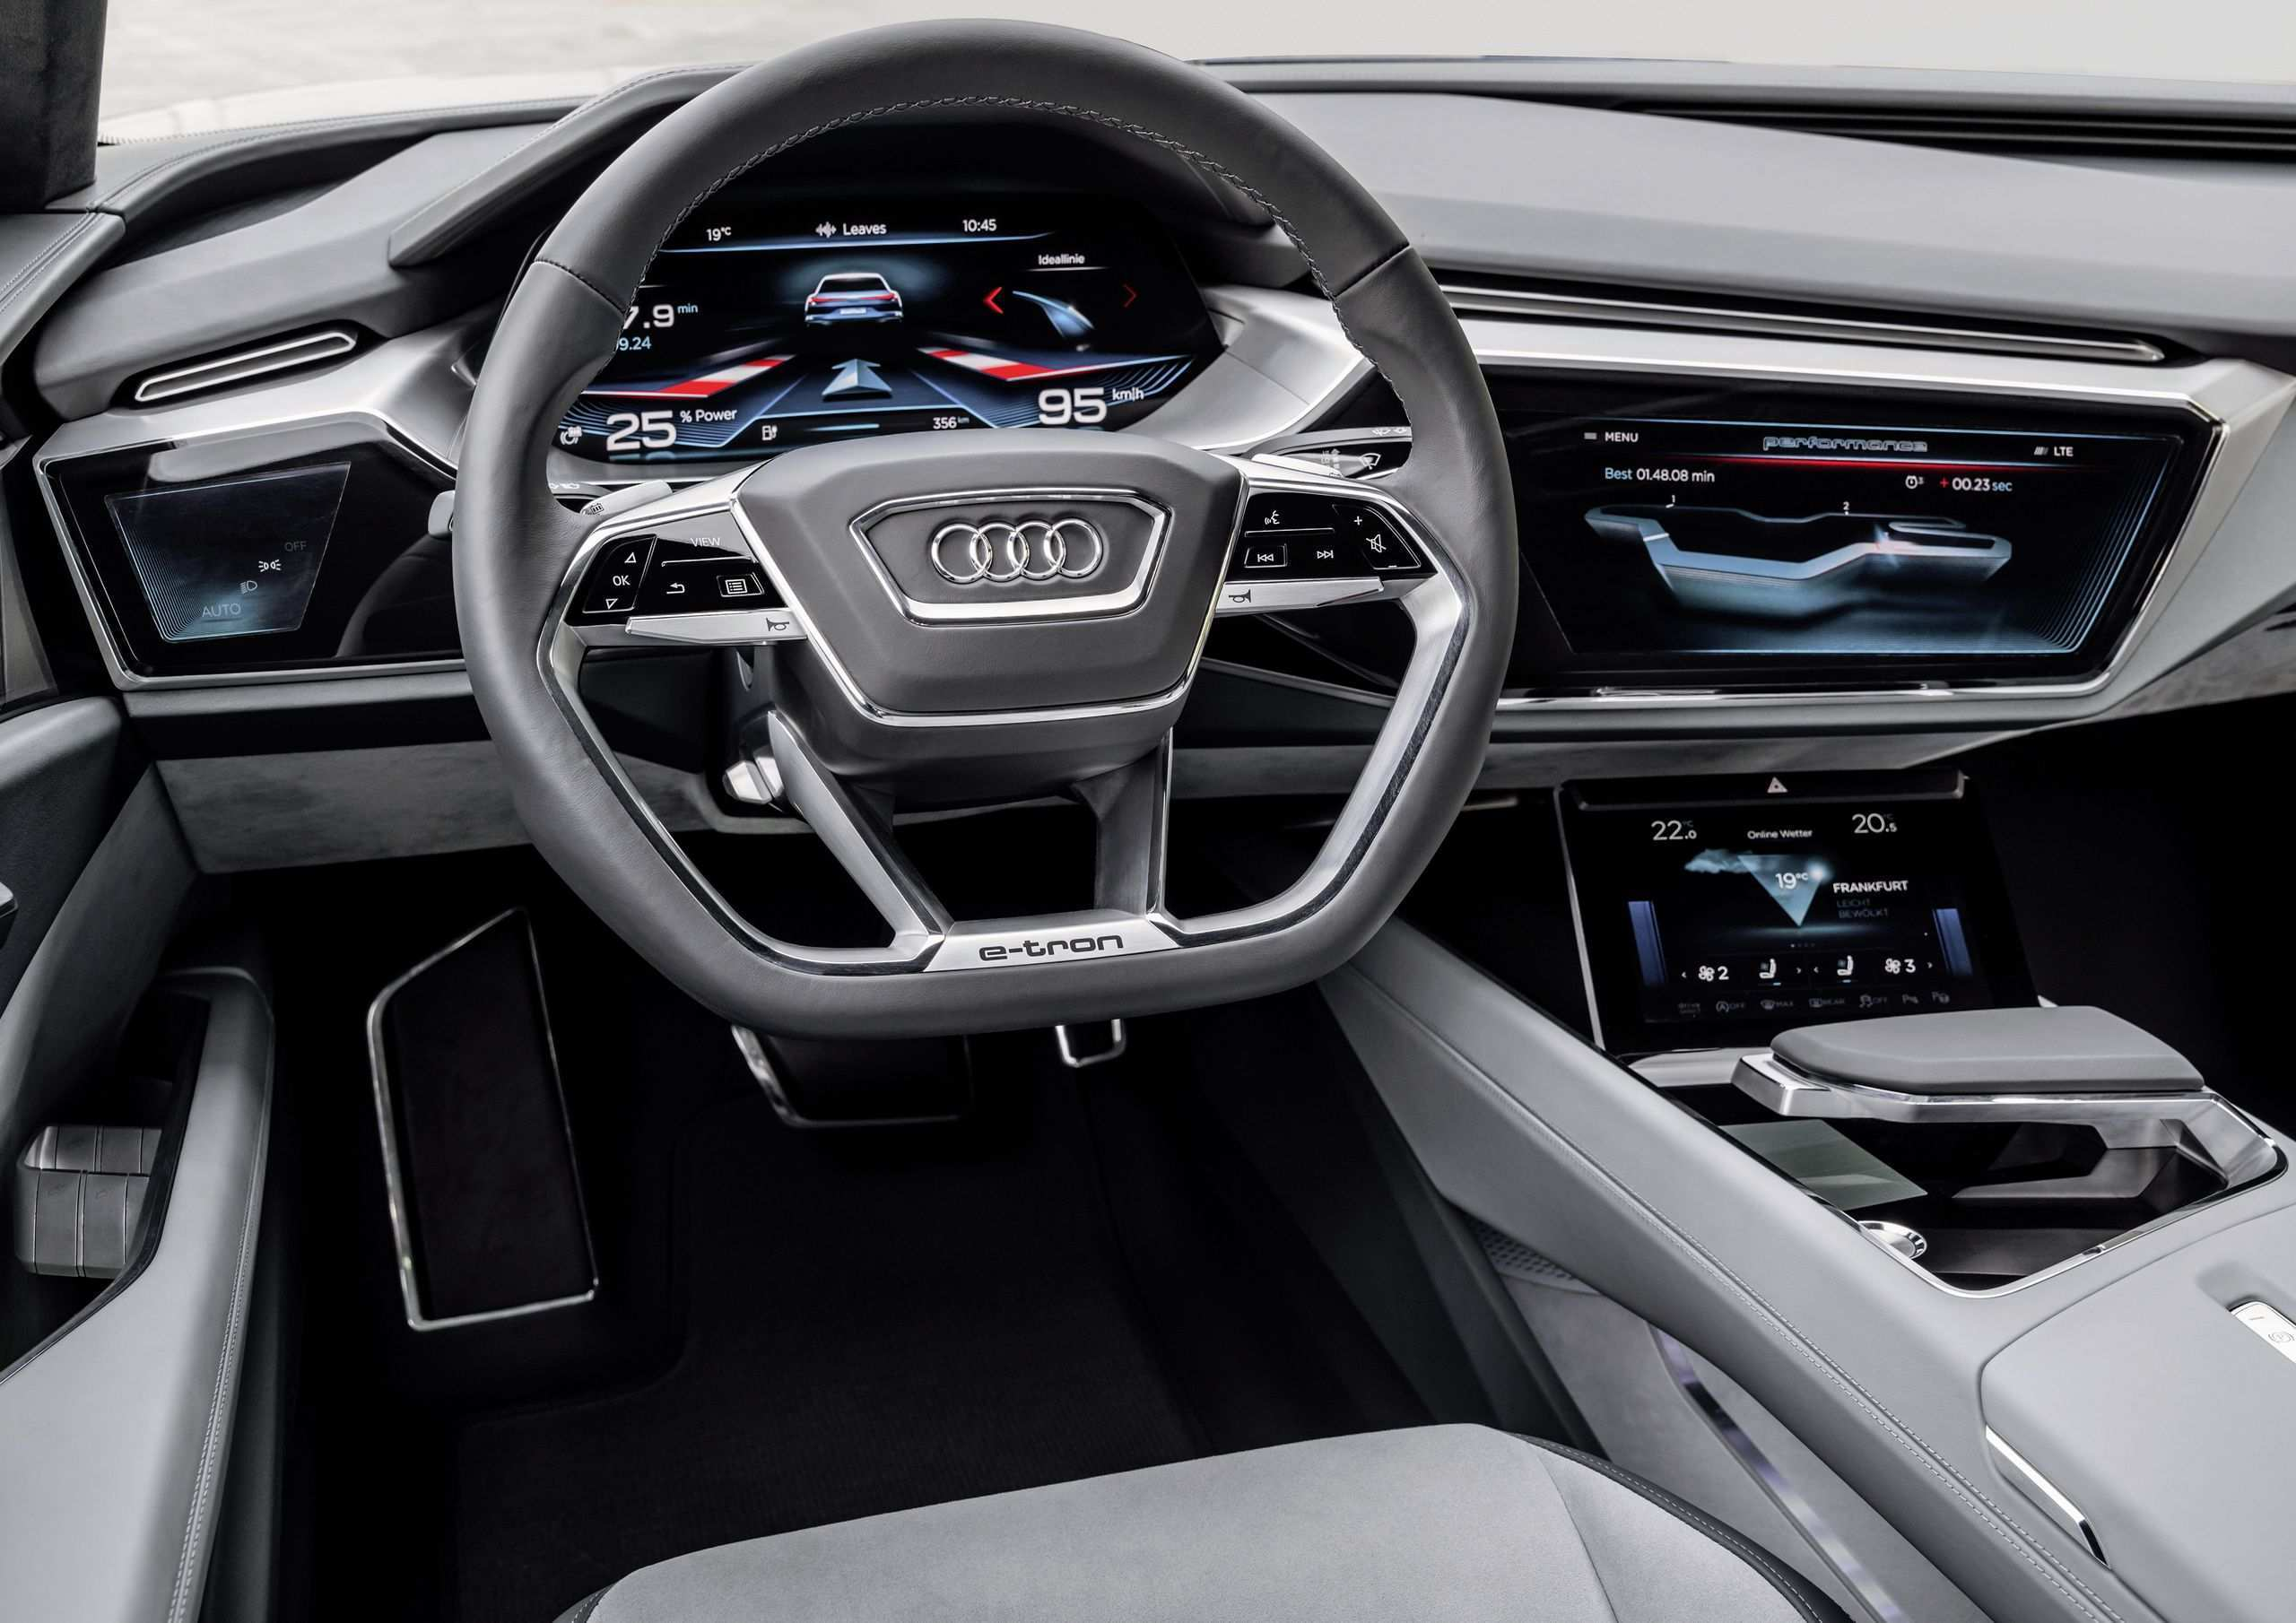 11 Gallery of 2019 Audi E Tron Quattro Price Pricing with 2019 Audi E Tron Quattro Price